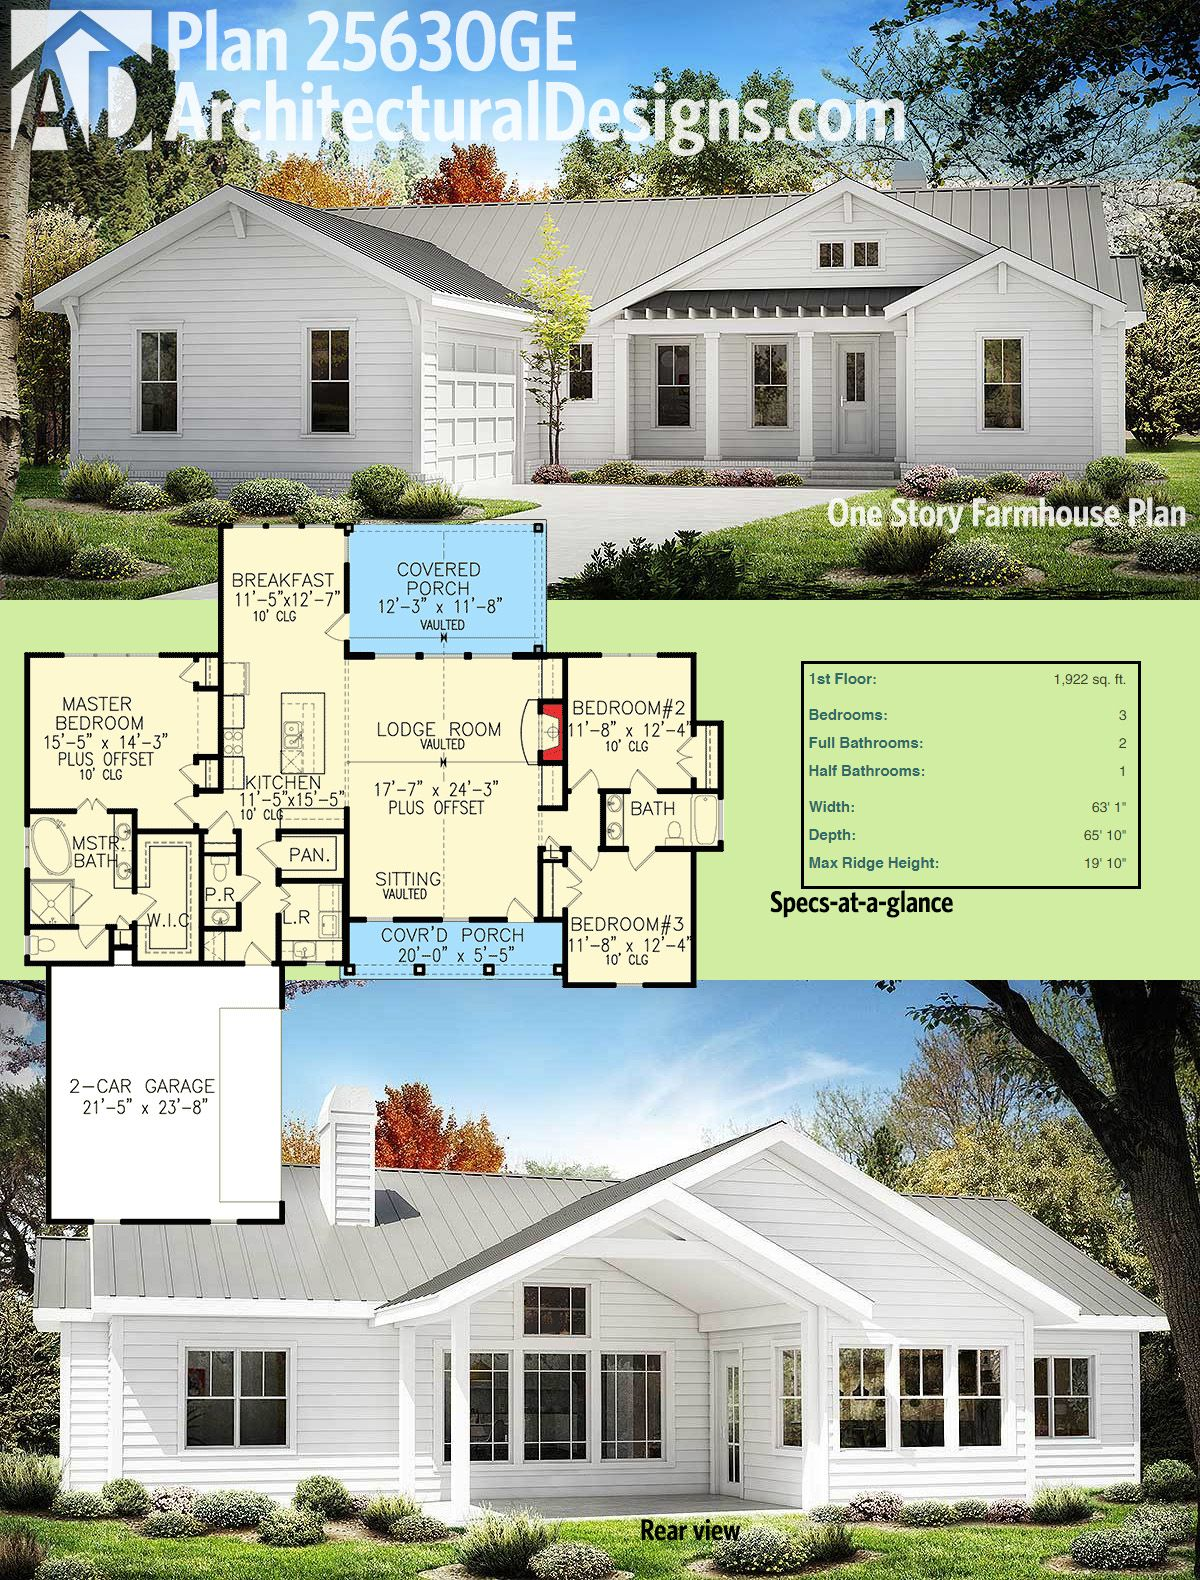 Plan 25630ge one story farmhouse plan farmhouse plans for Contemporary farmhouse floor plans